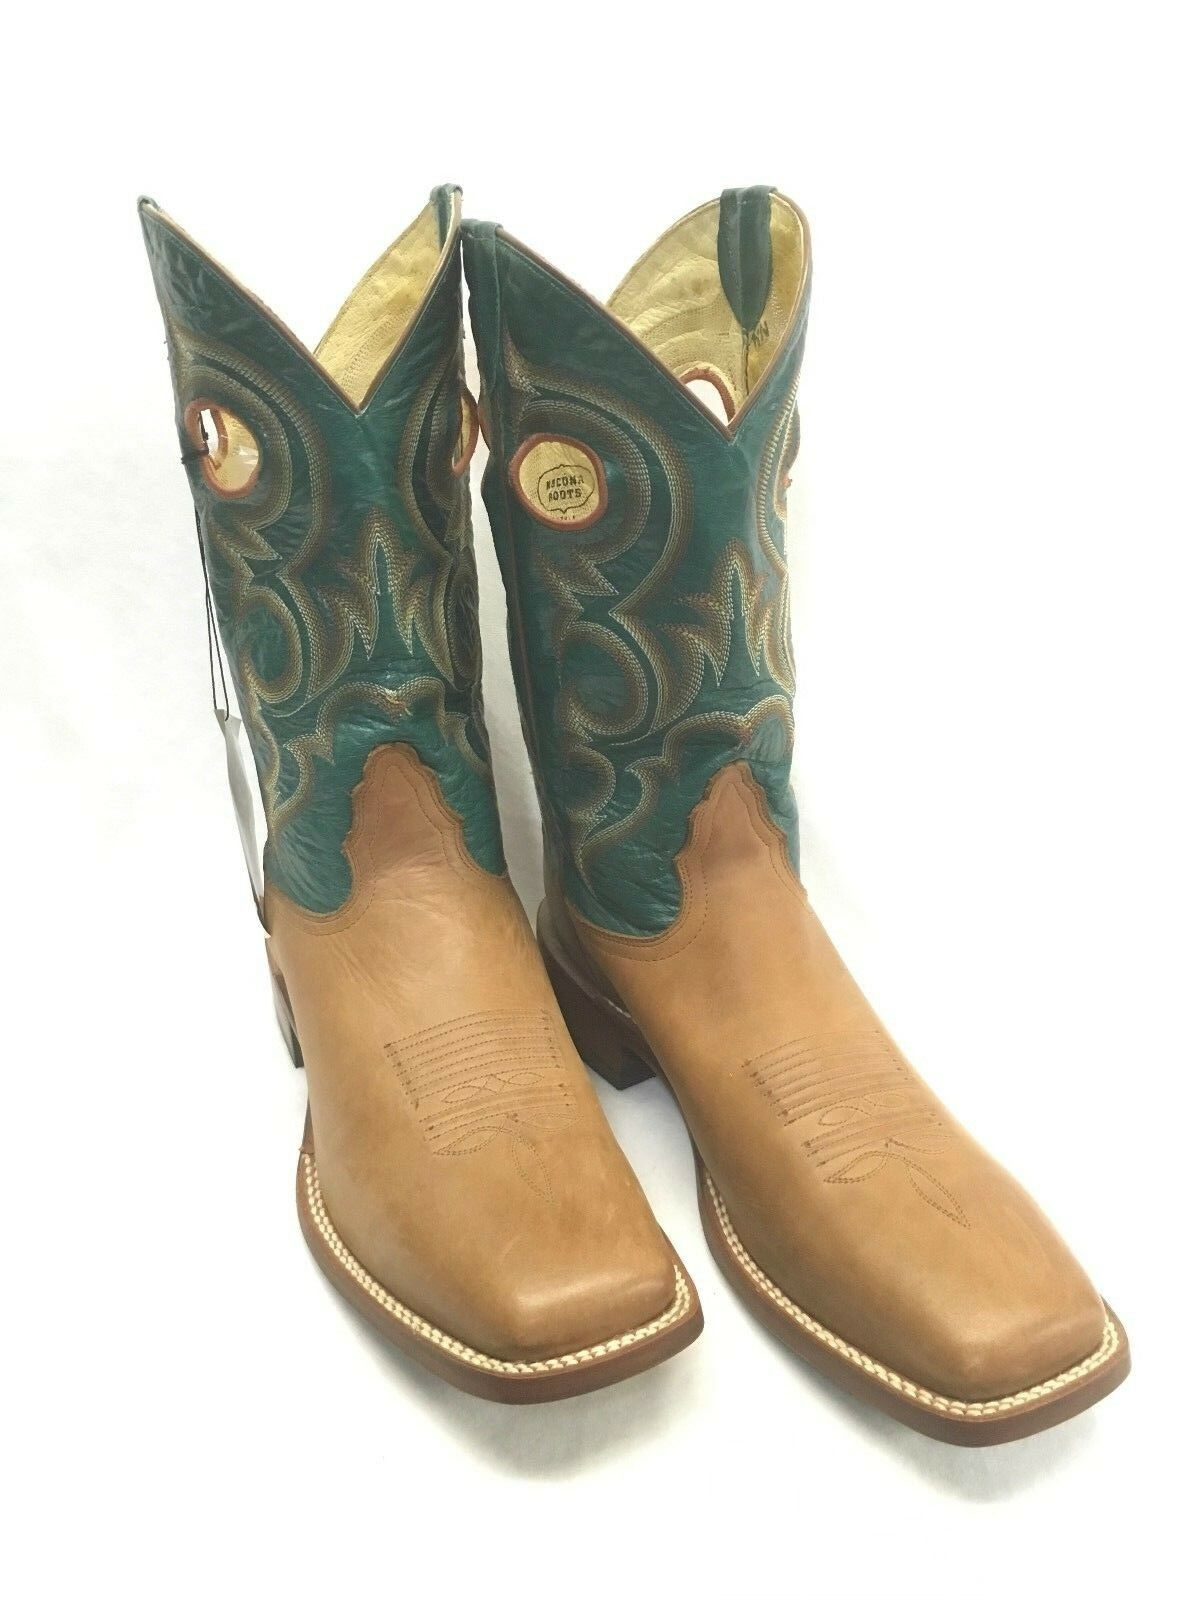 Men's Nocona Boots-Copper Ranch Hand Vamp Style NB4011